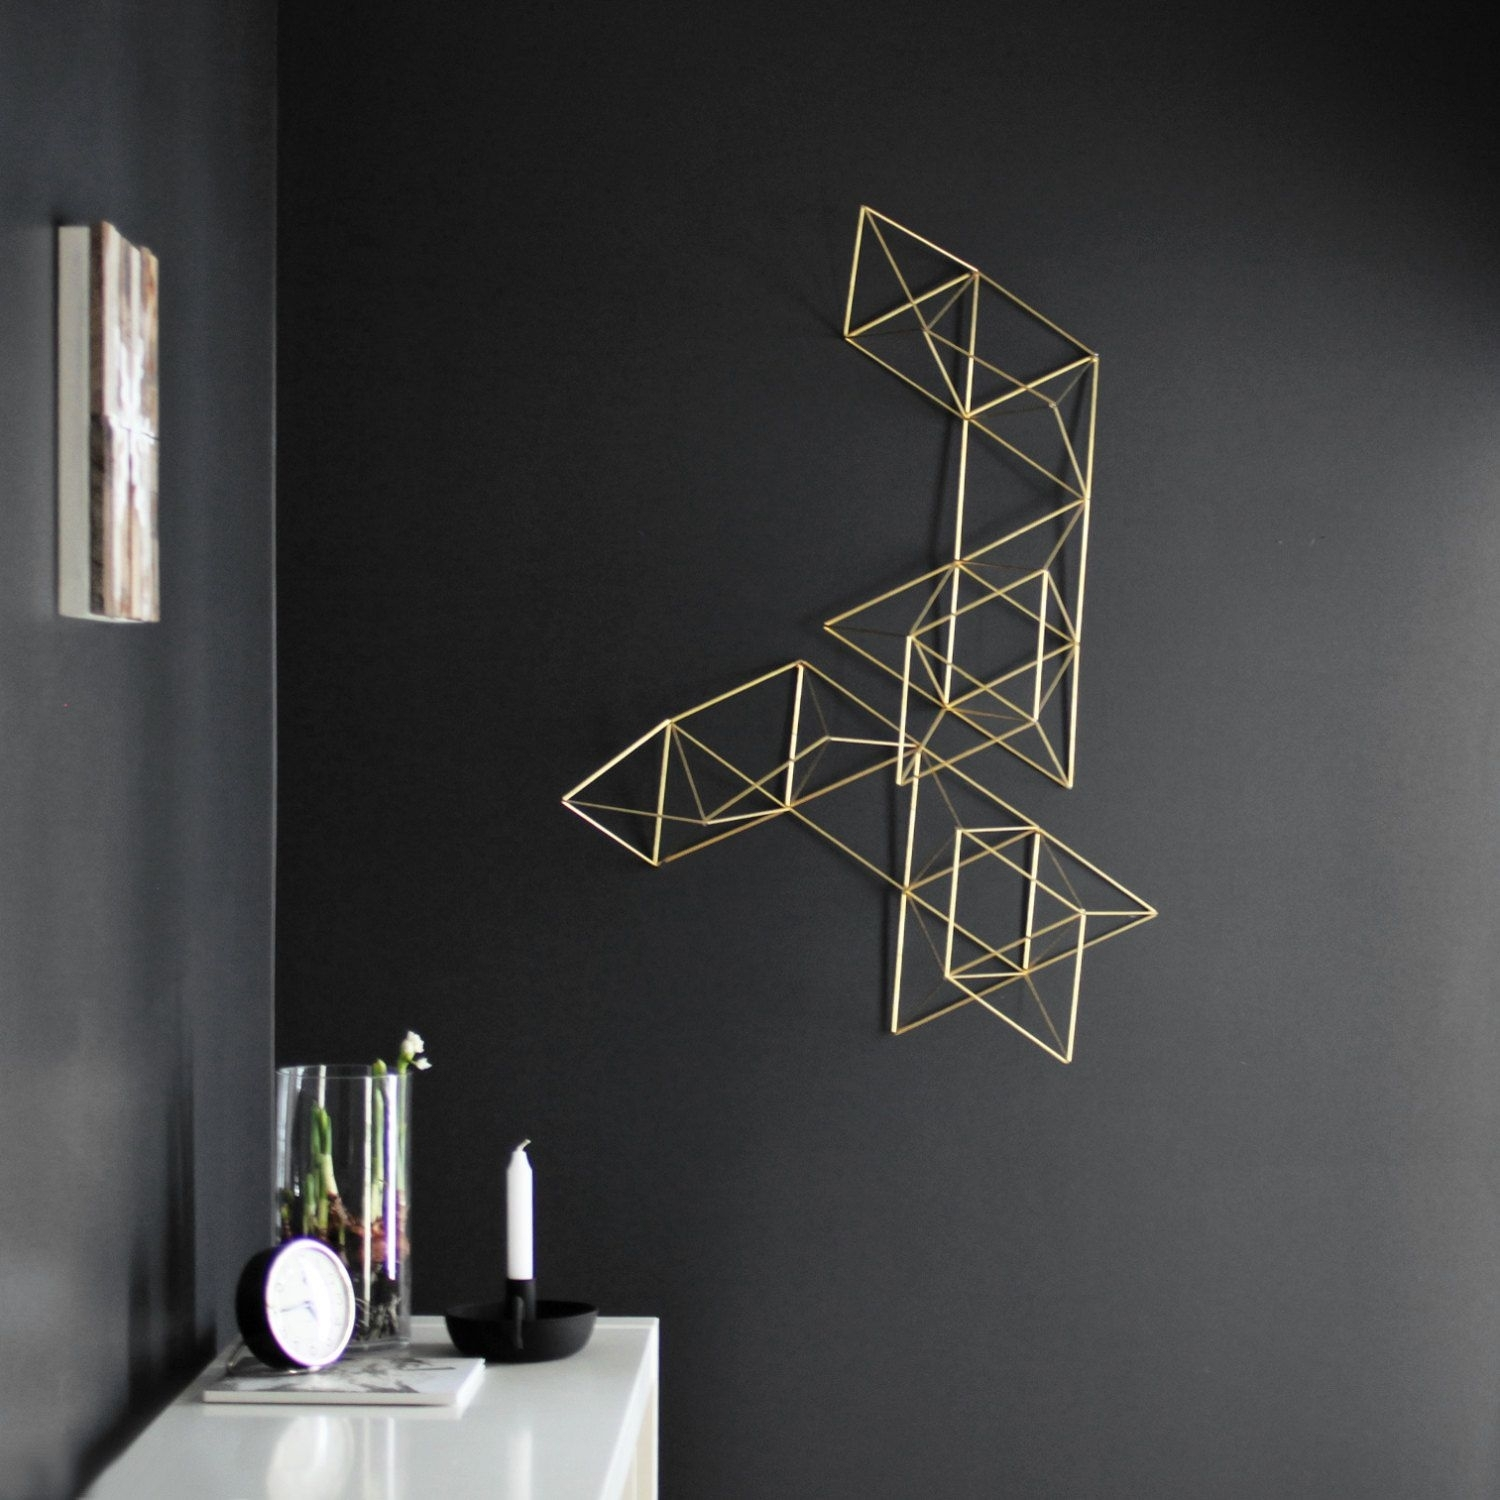 Lux – Large Abstract Wall Sculpture – Geometric Art – Himmeli Regarding 2018 Abstract Geometric Metal Wall Art (View 10 of 20)